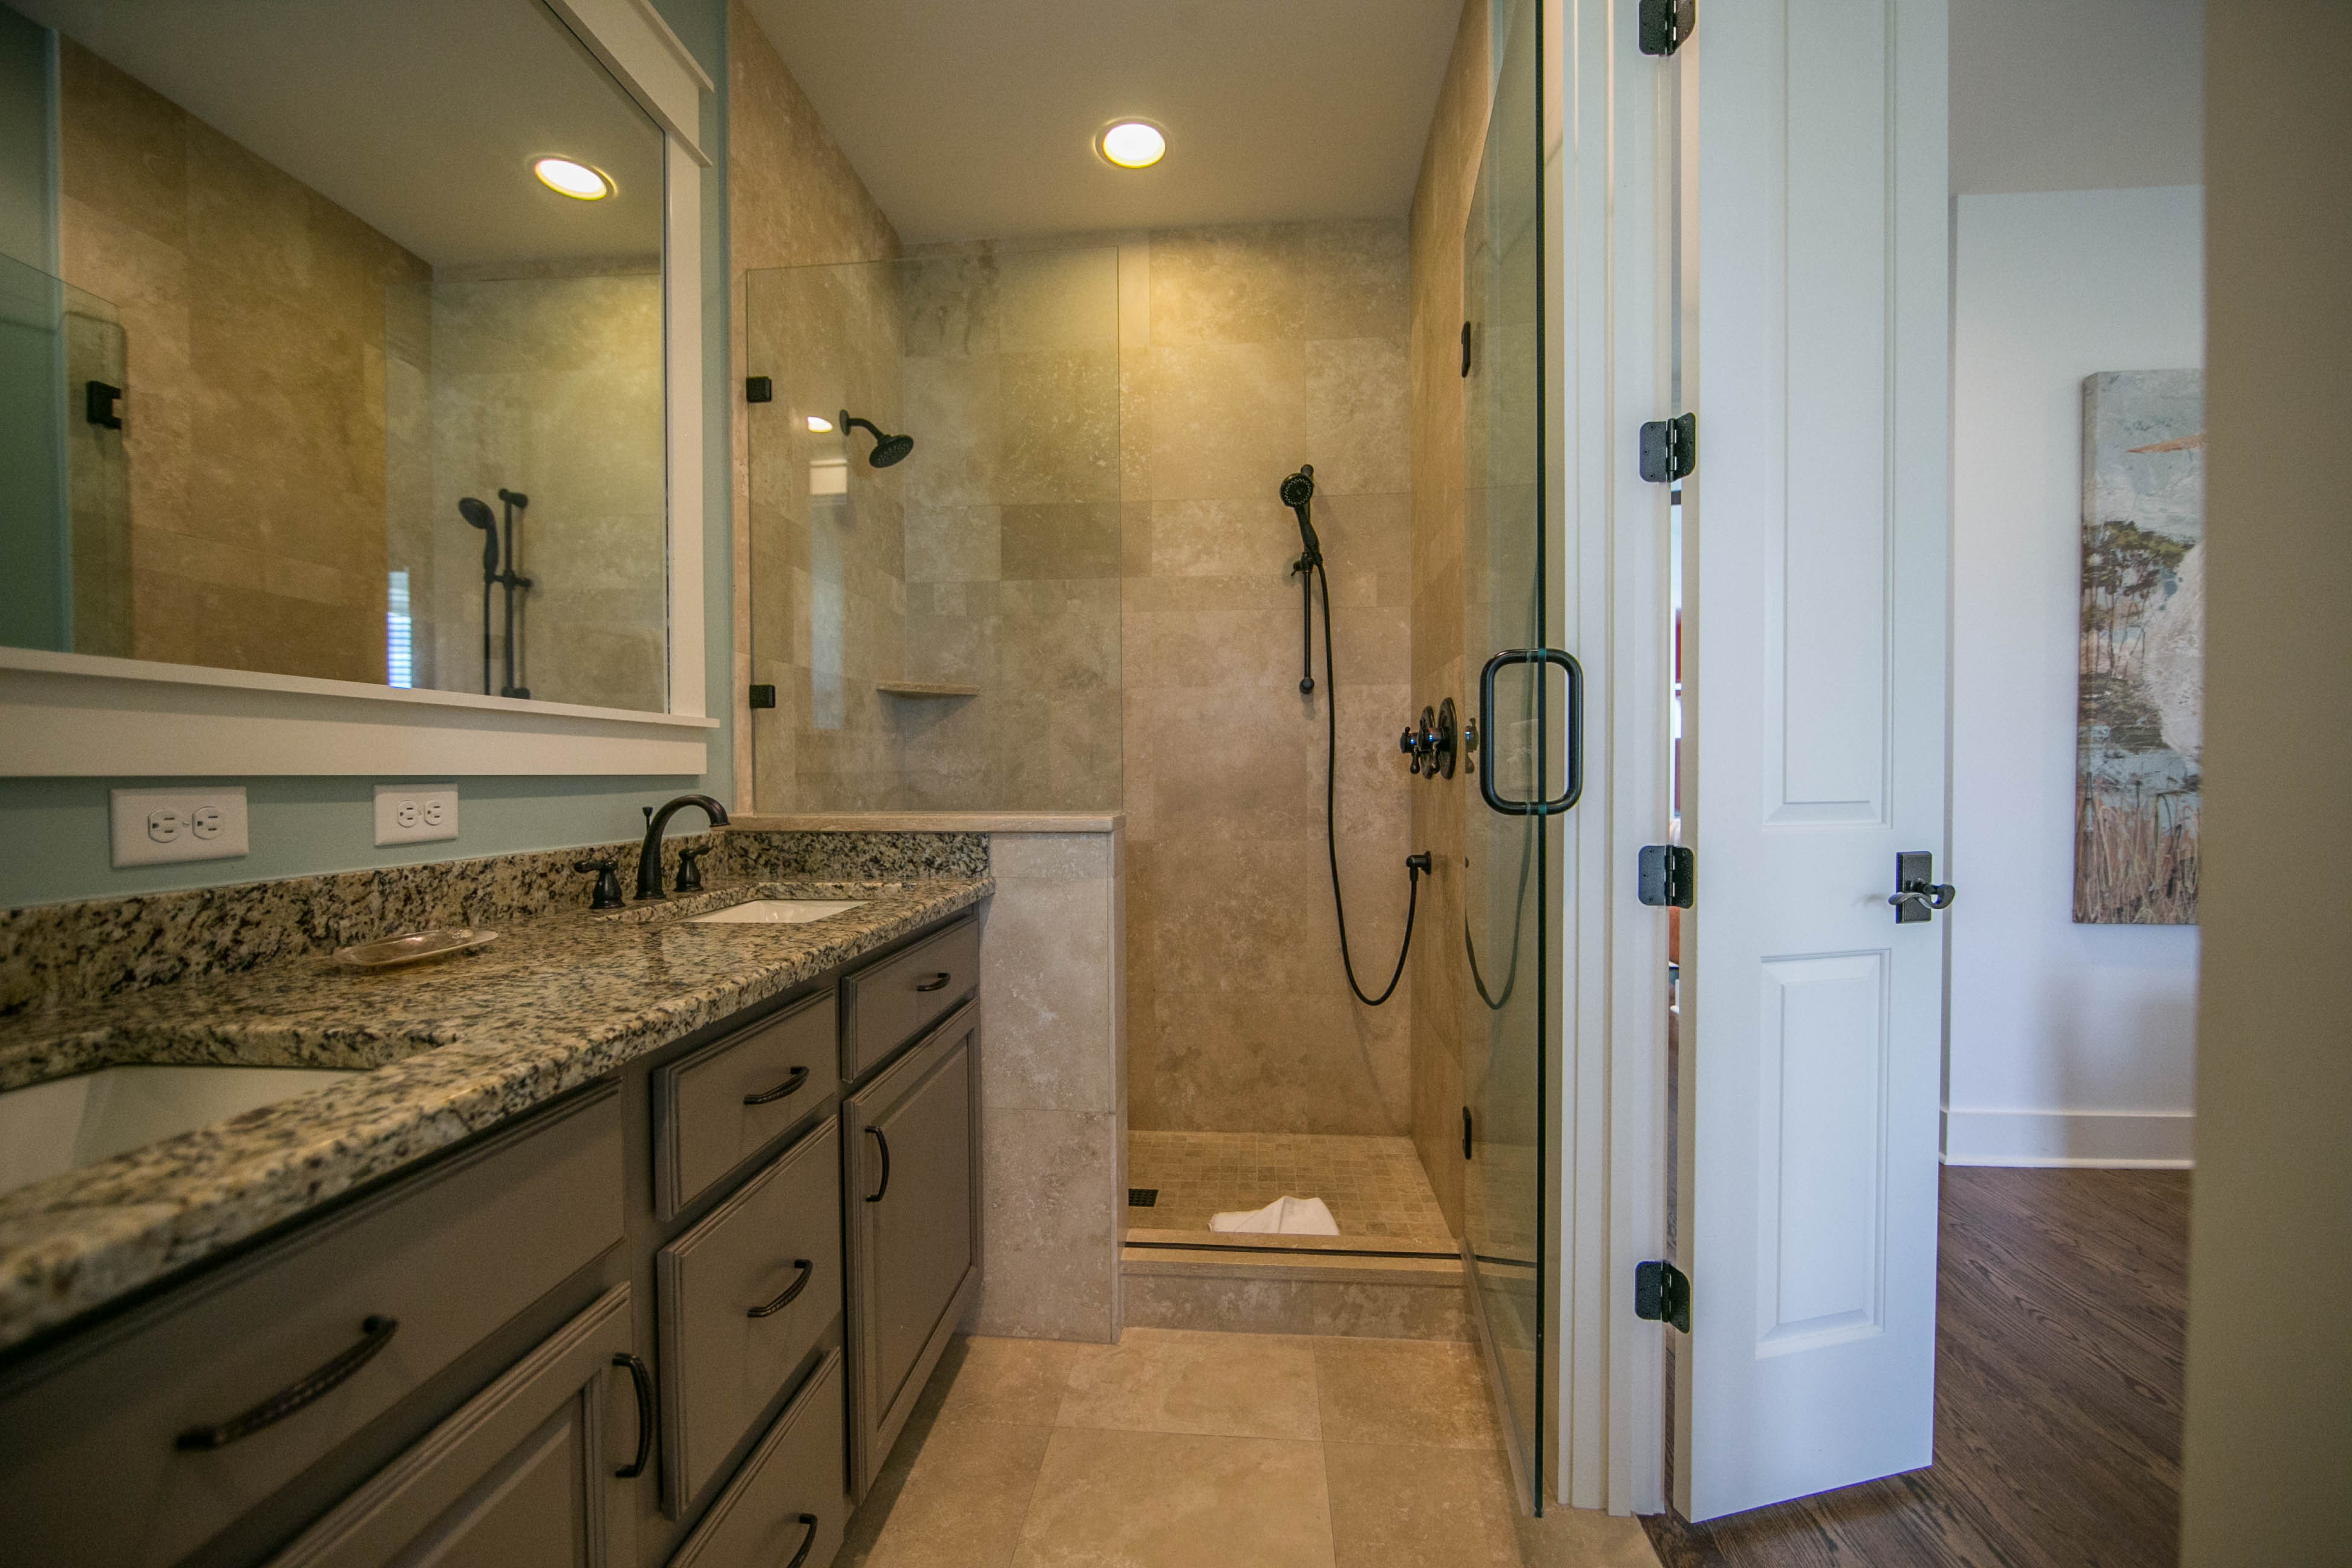 2nd floor Master bedroom bathroom with walk in shower